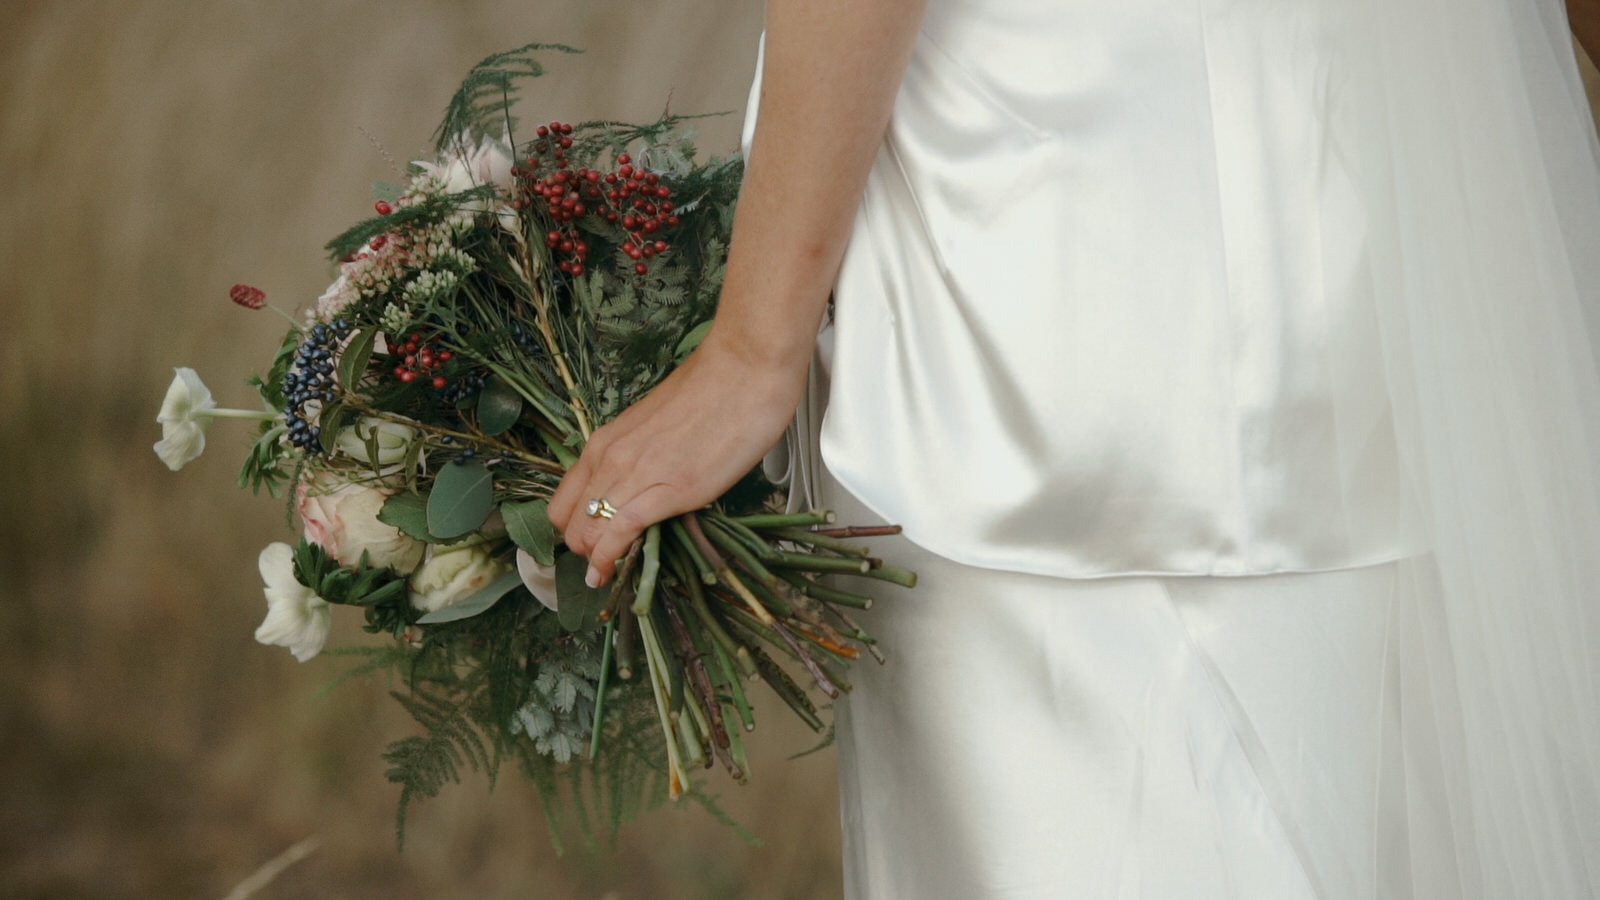 Bride holding her bouquet of wedding flowers